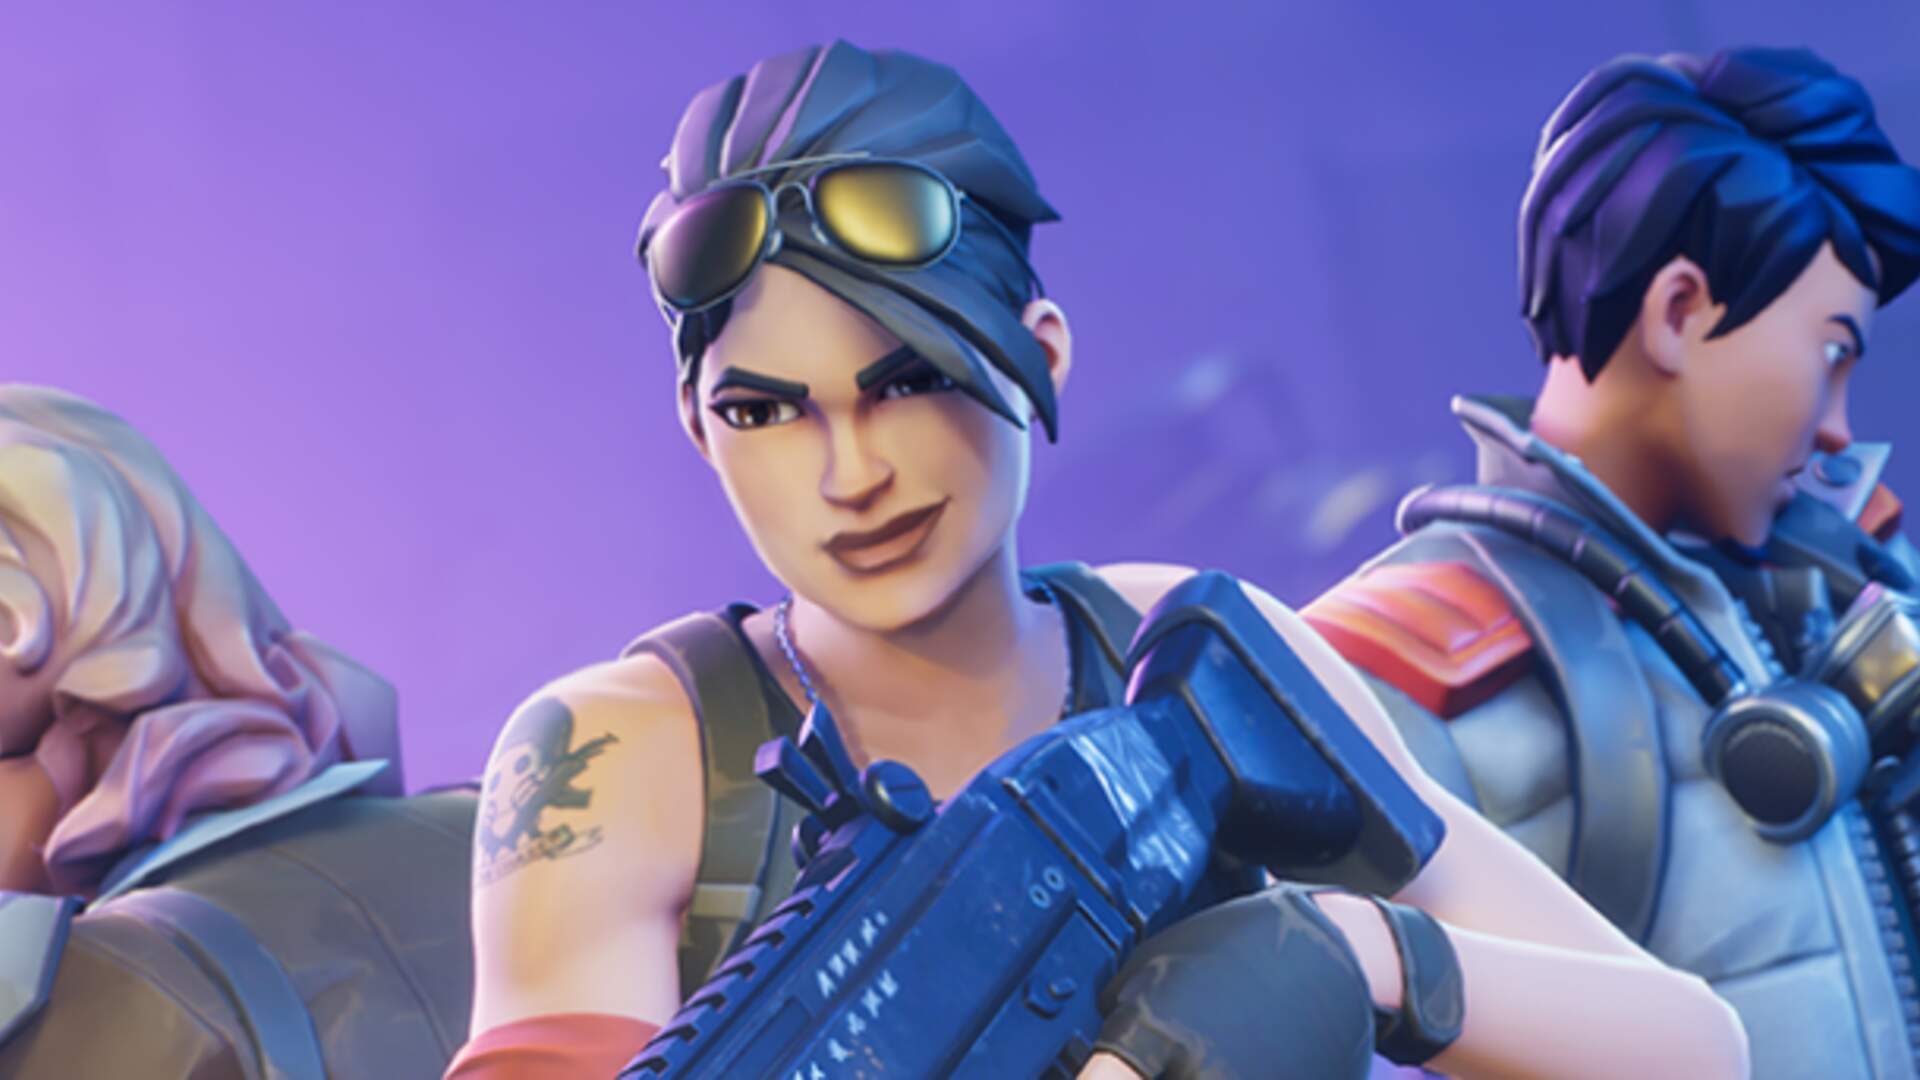 Epic Working to Make Fortnite Battle Royale and Save the World Controls More Similar